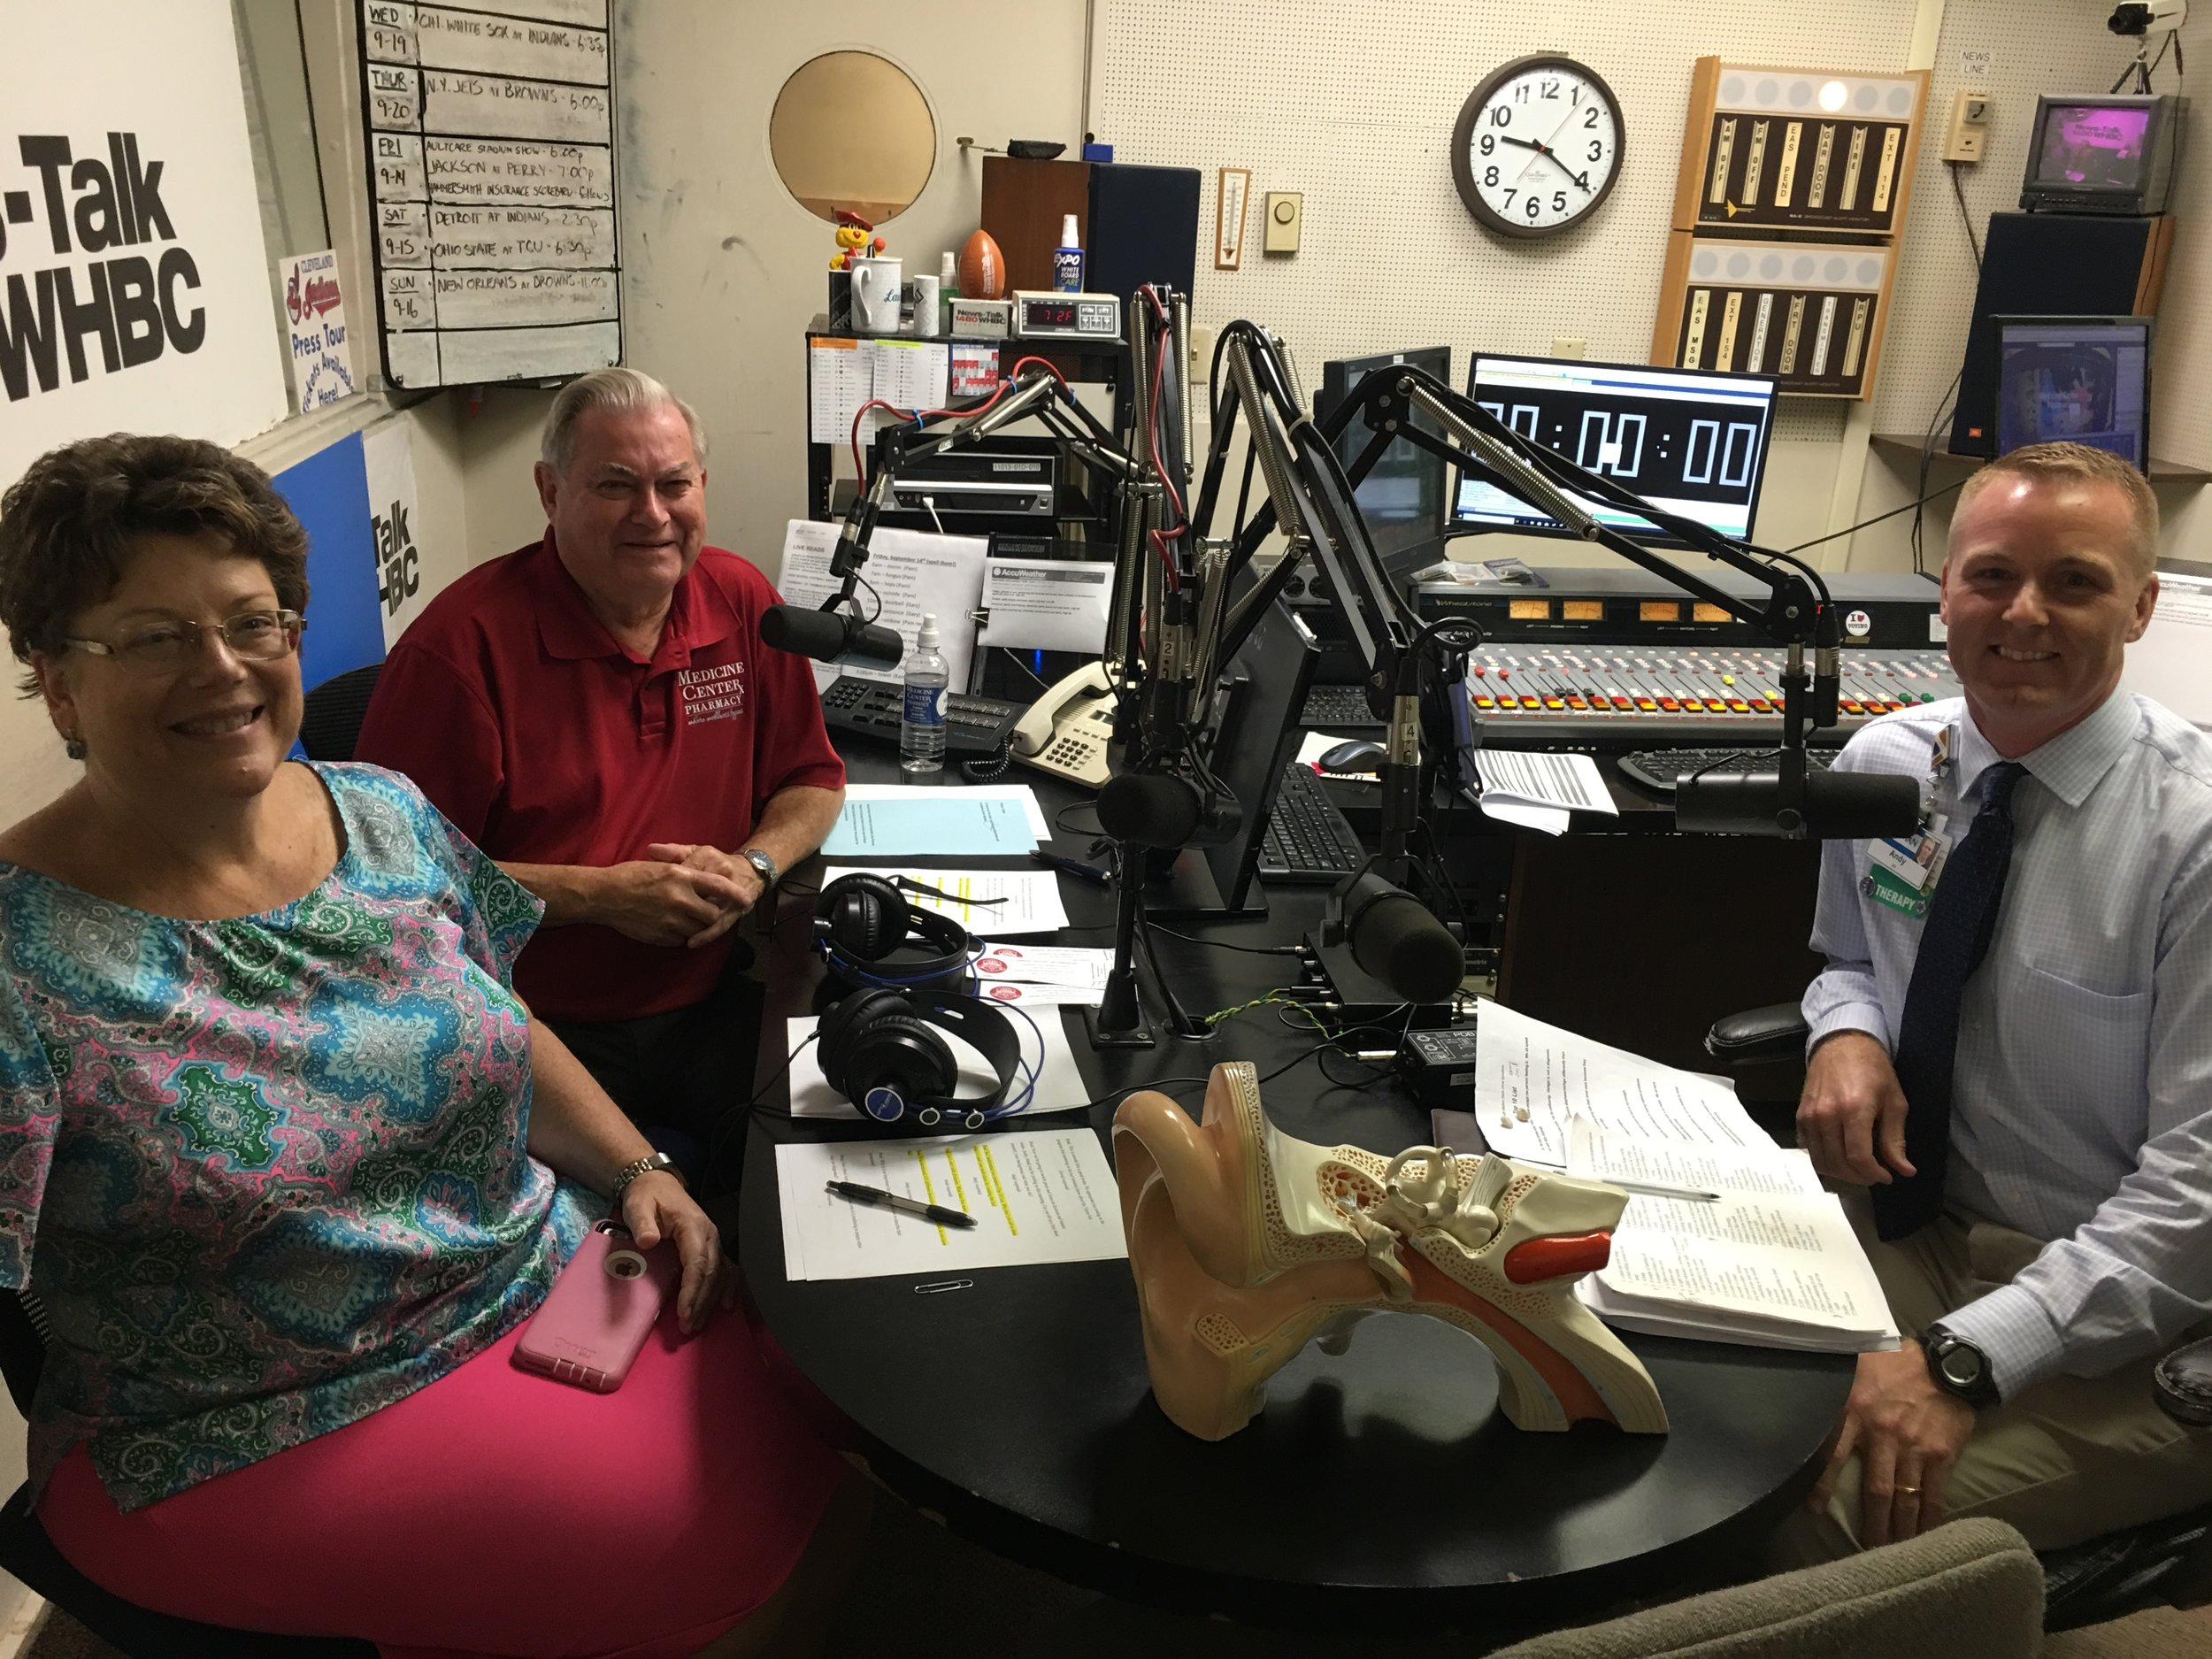 L-R: Medicine Center Pharmacy's Executive Vice President Nancy Wharmby and Pharmacist Paul White talk with Andy Beltz, physical therapist from Aultman Hospital.